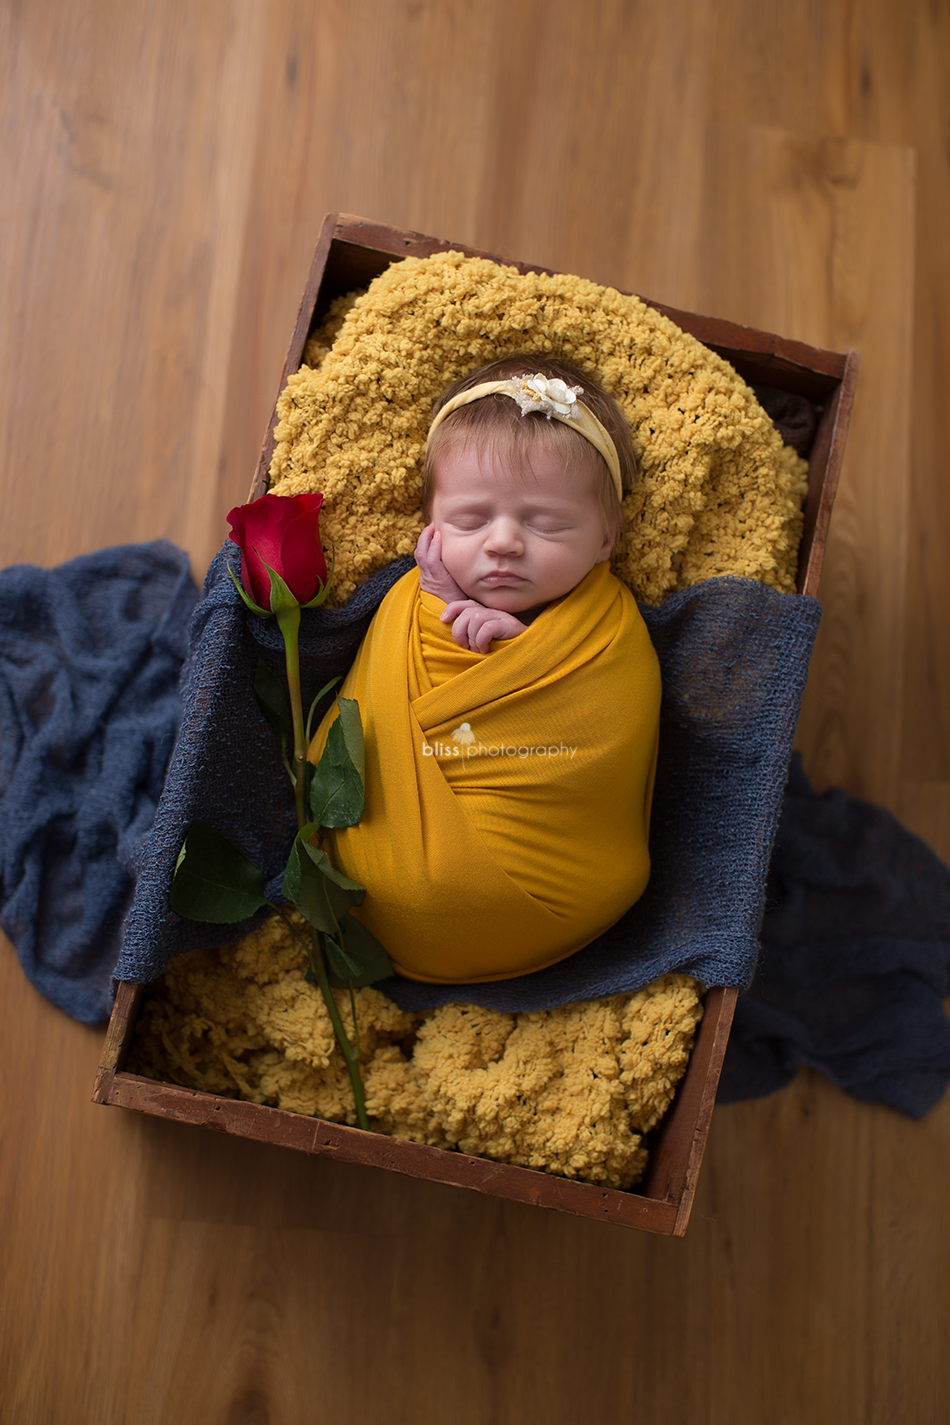 disney princess beauty and the beast newborn